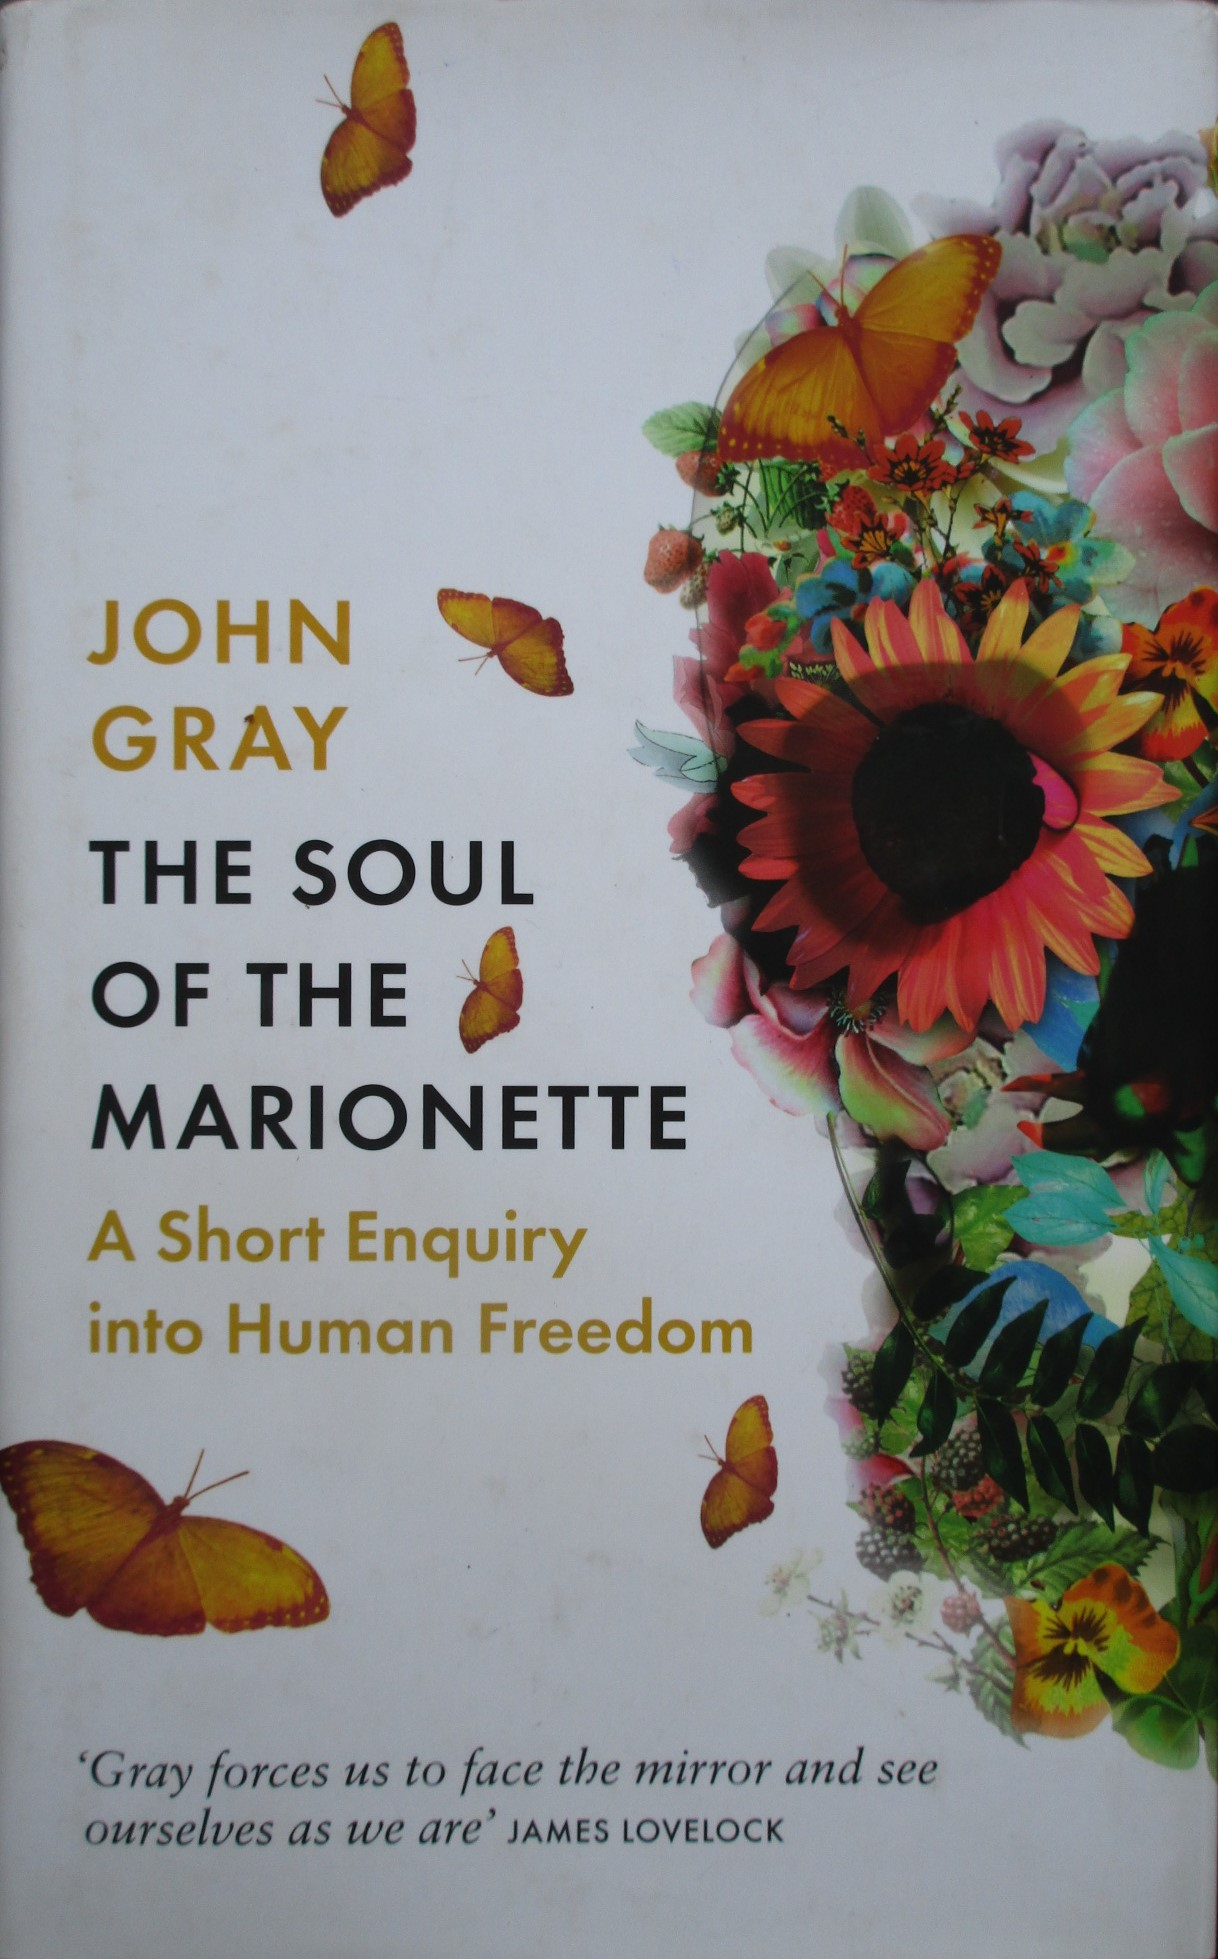 The Soul of the Marionette: A Short Enquiry into Human Freedom